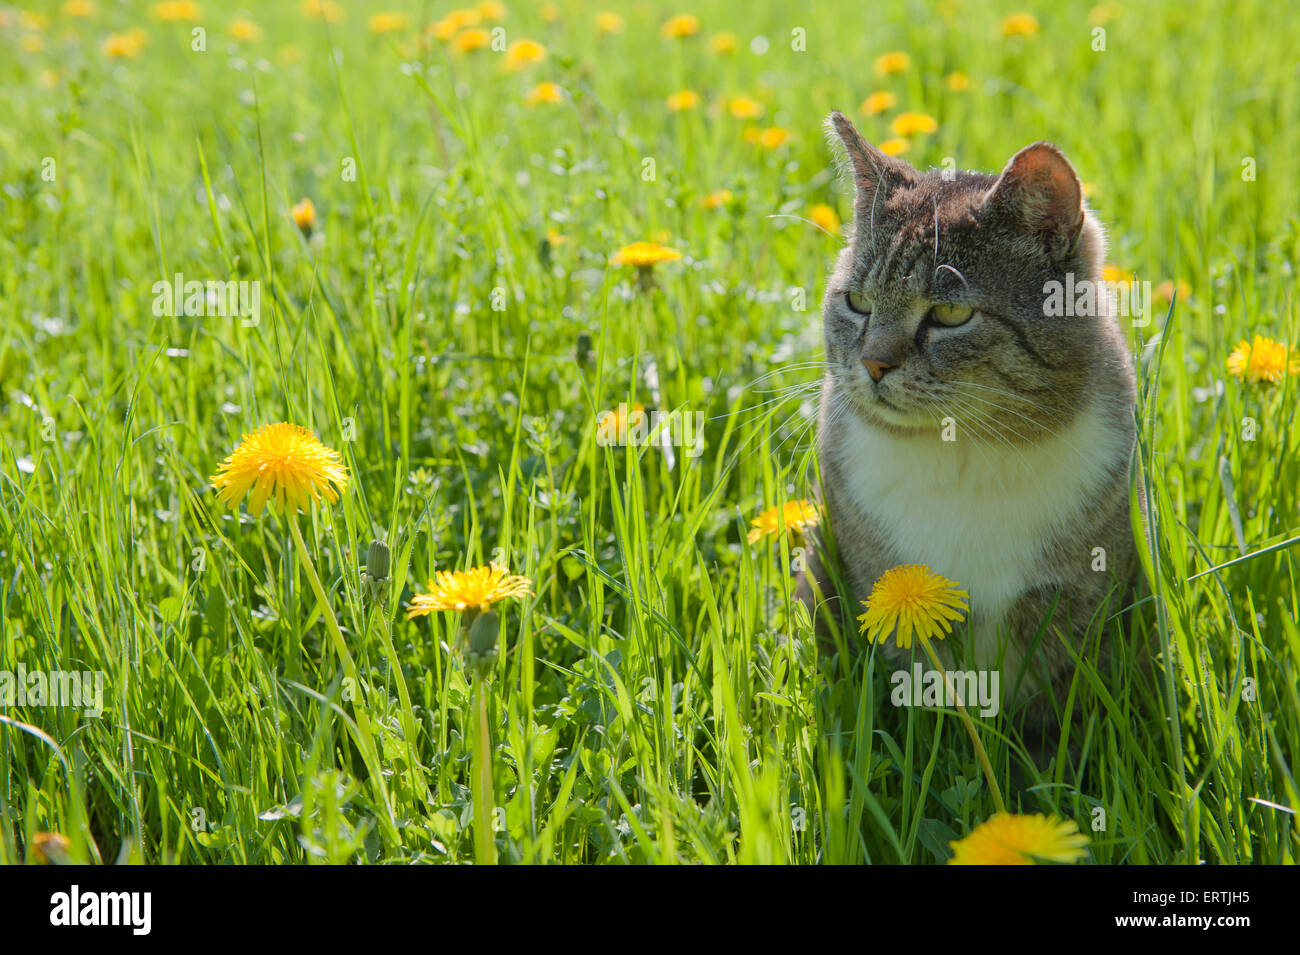 (Felis silvestris catus) Cat sitting in a meadow with dandelion - Stock Image